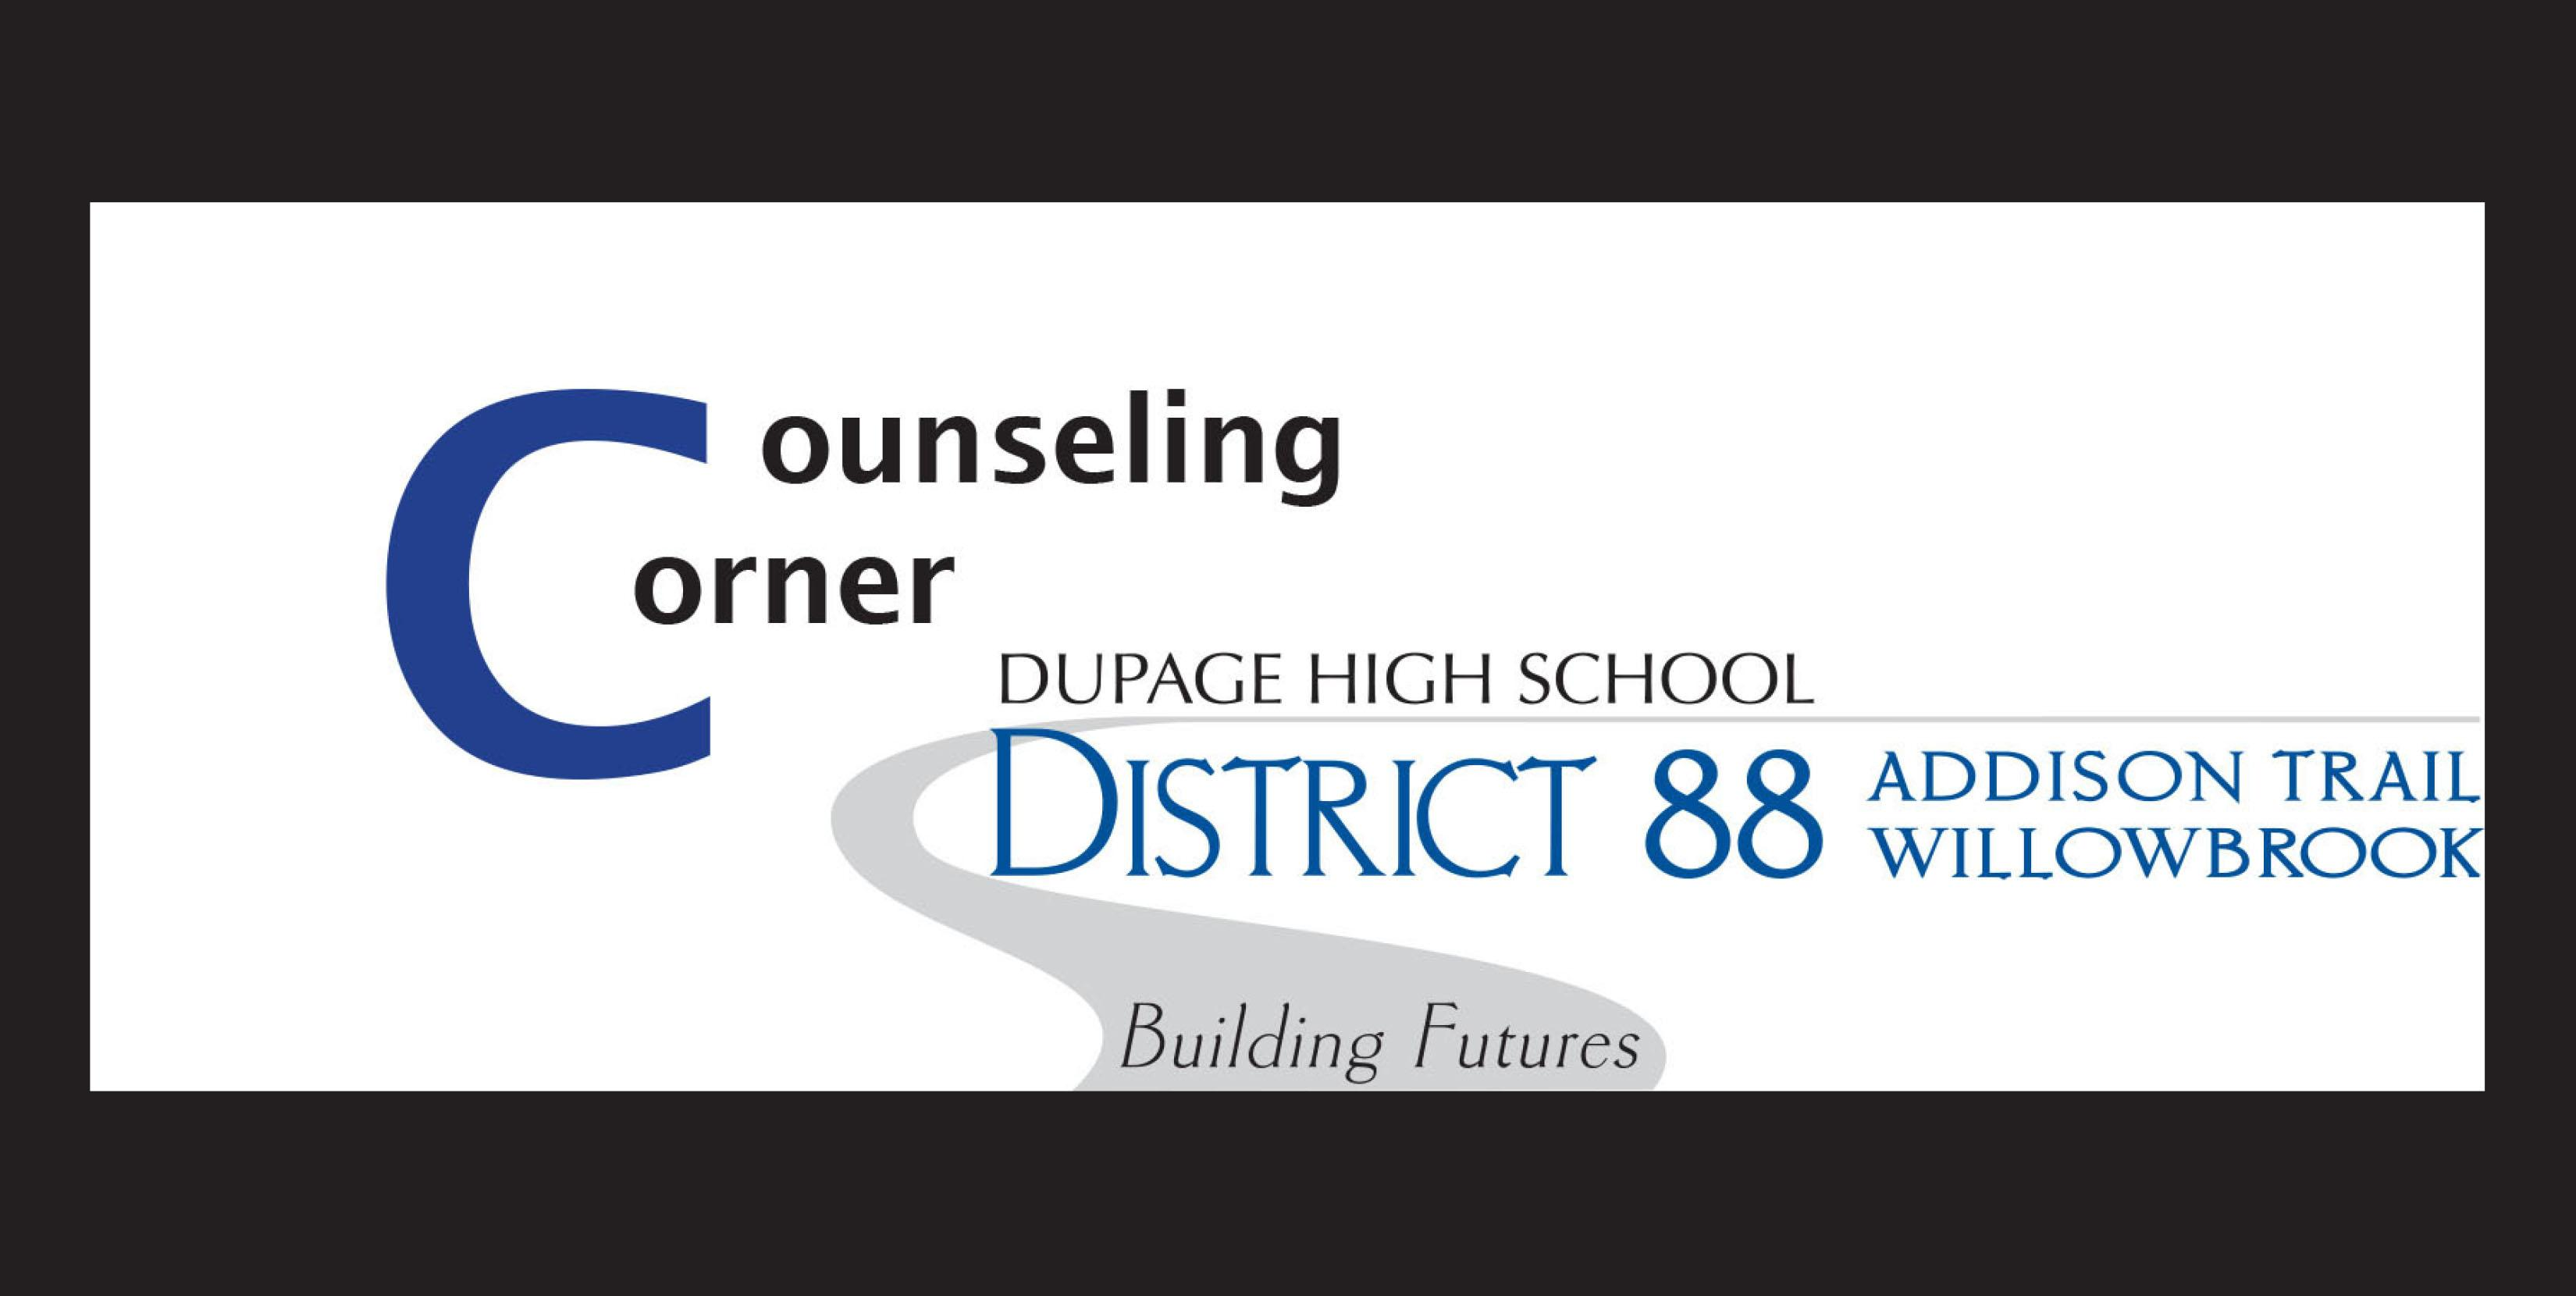 Counseling Corner: Willowbrook Guidance Department offers areas of focus for students during Winter Break